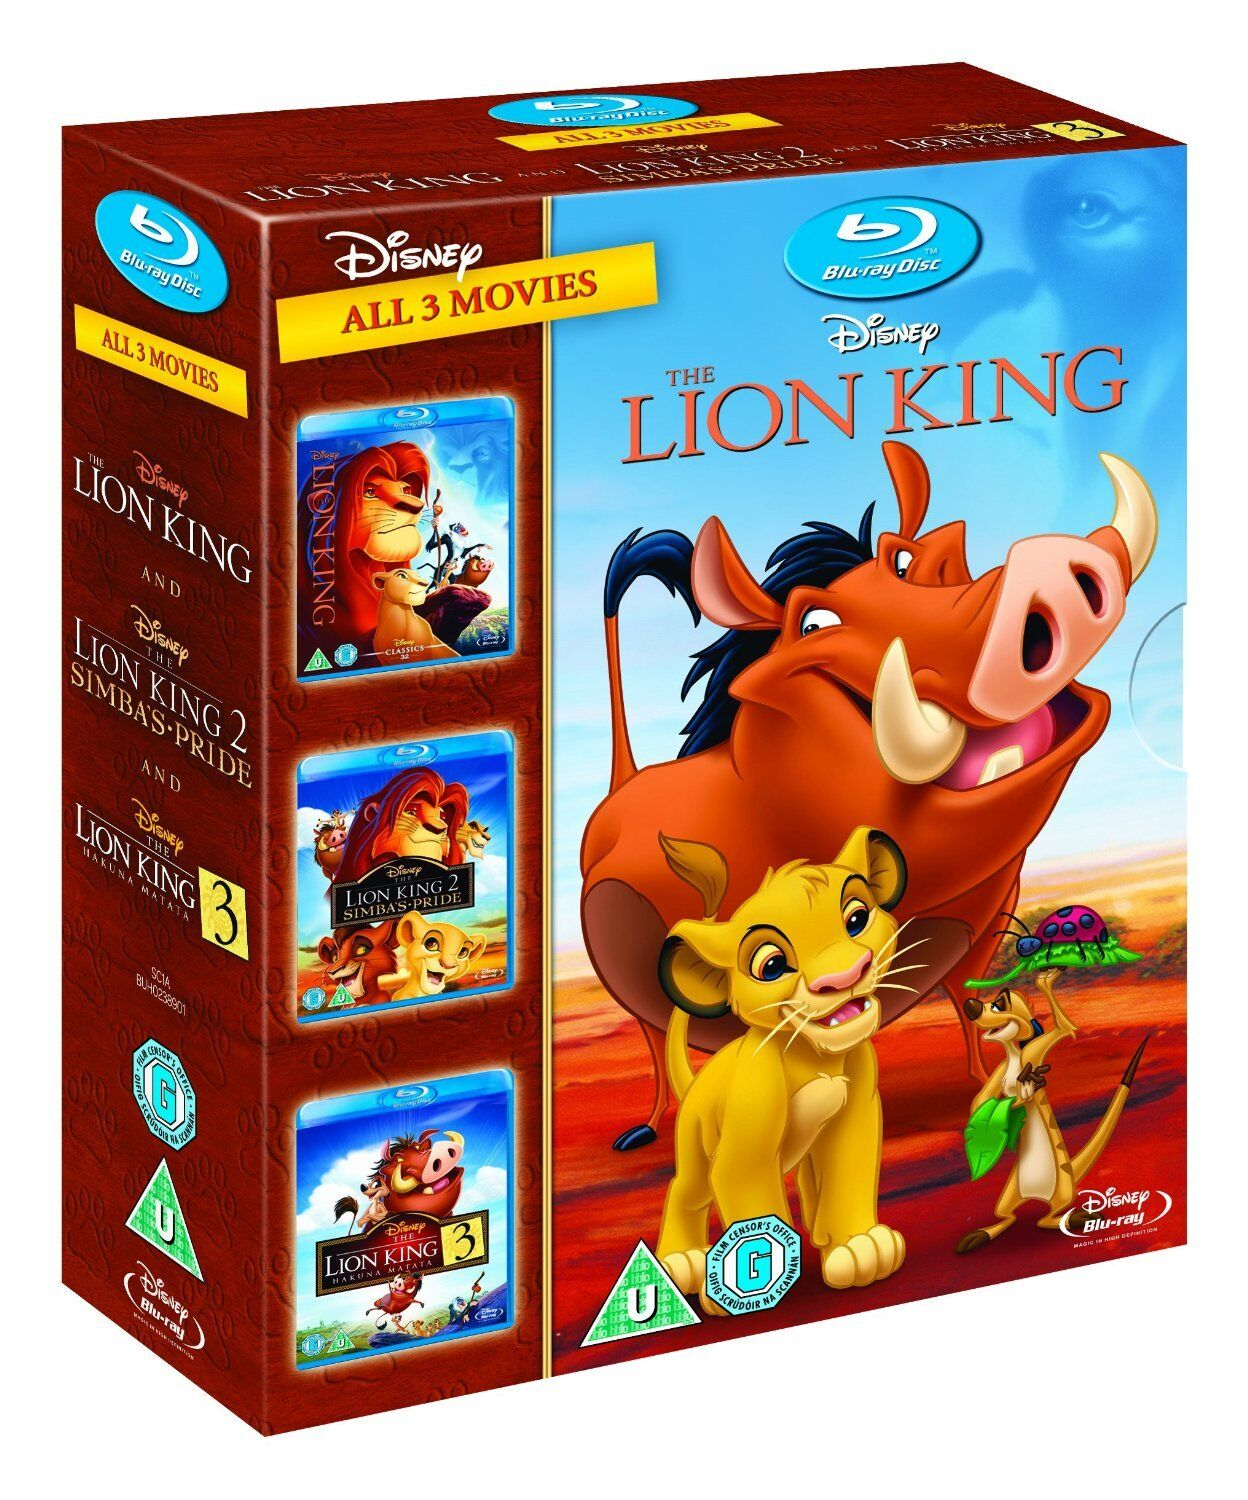 THE LION KING TRILOGY [Blu-ray Box Set] All Movies 1 2 3 Disney Movie Collection | eBay